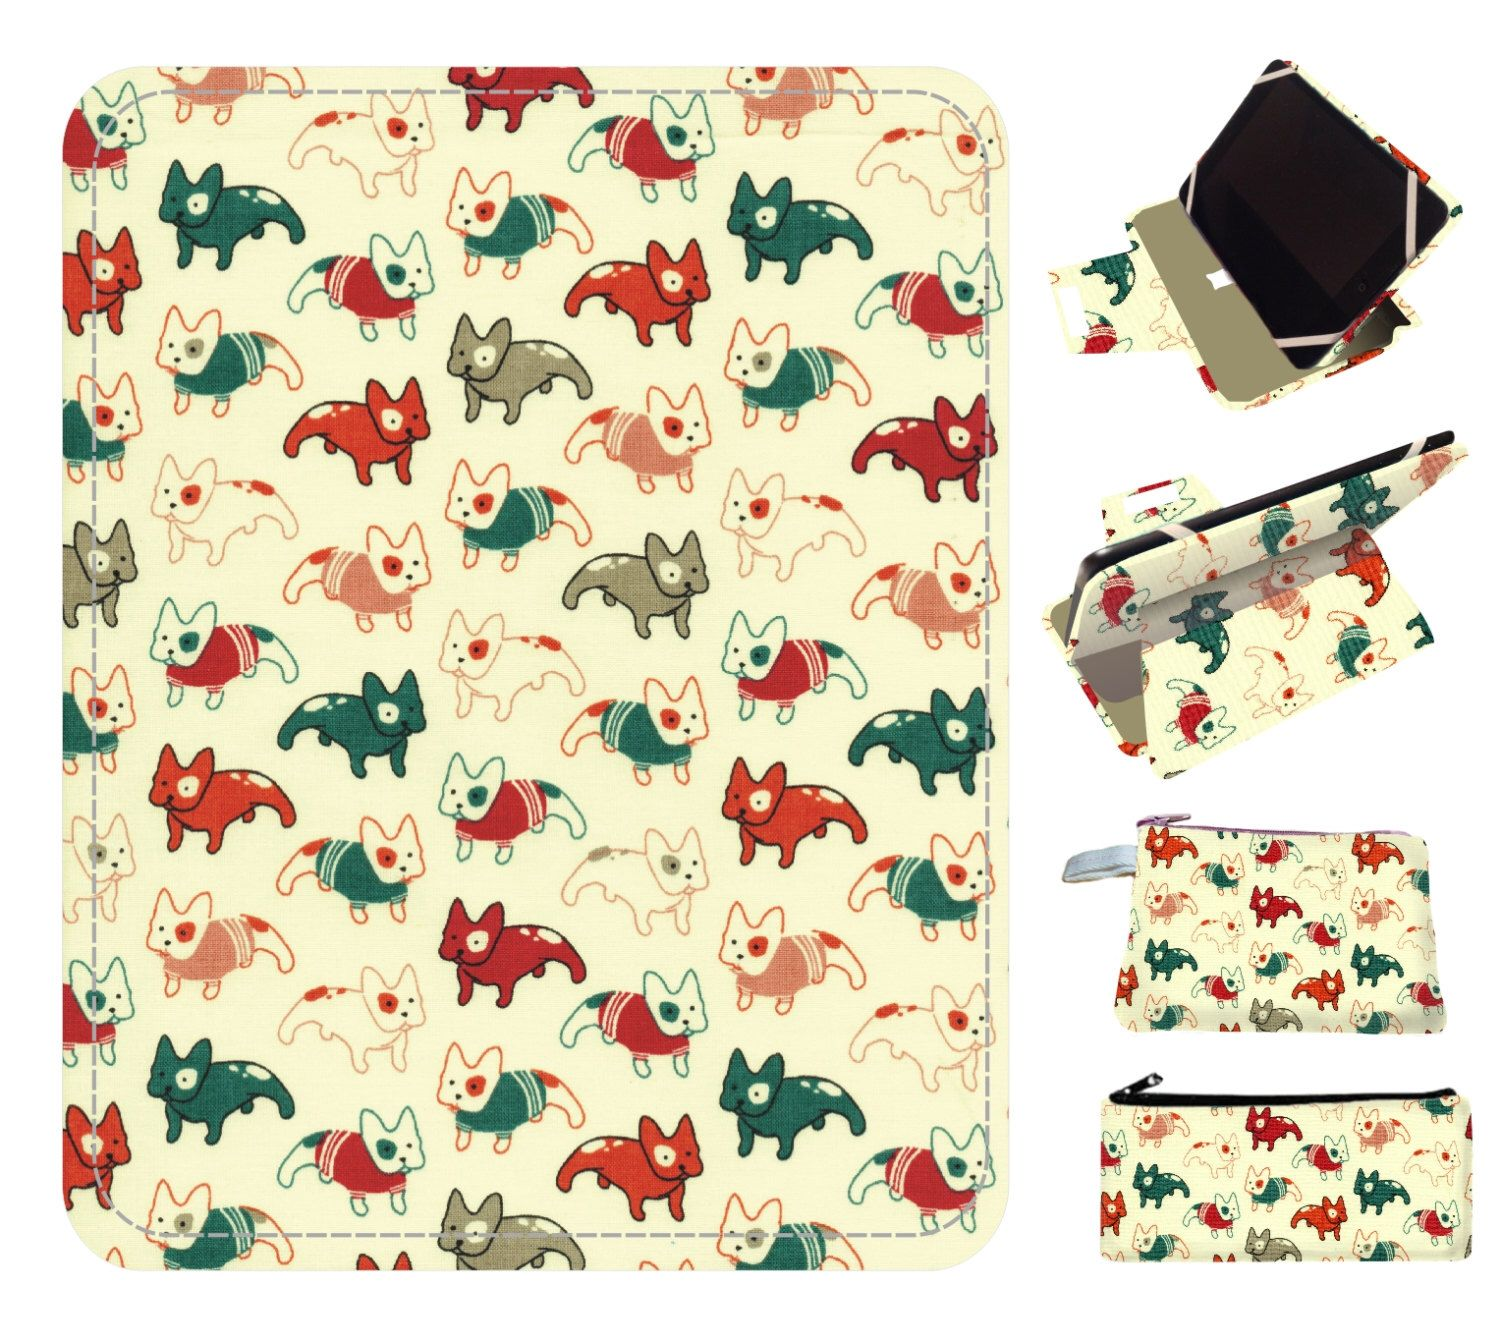 french bulldog ipad air 2 case stand handmade ipad cover ipad air case cute ipad cases ipad mini case ipad case stand, ipad stand, ipad air by superpowerscases on Etsy https://www.etsy.com/listing/210576302/french-bulldog-ipad-air-2-case-stand